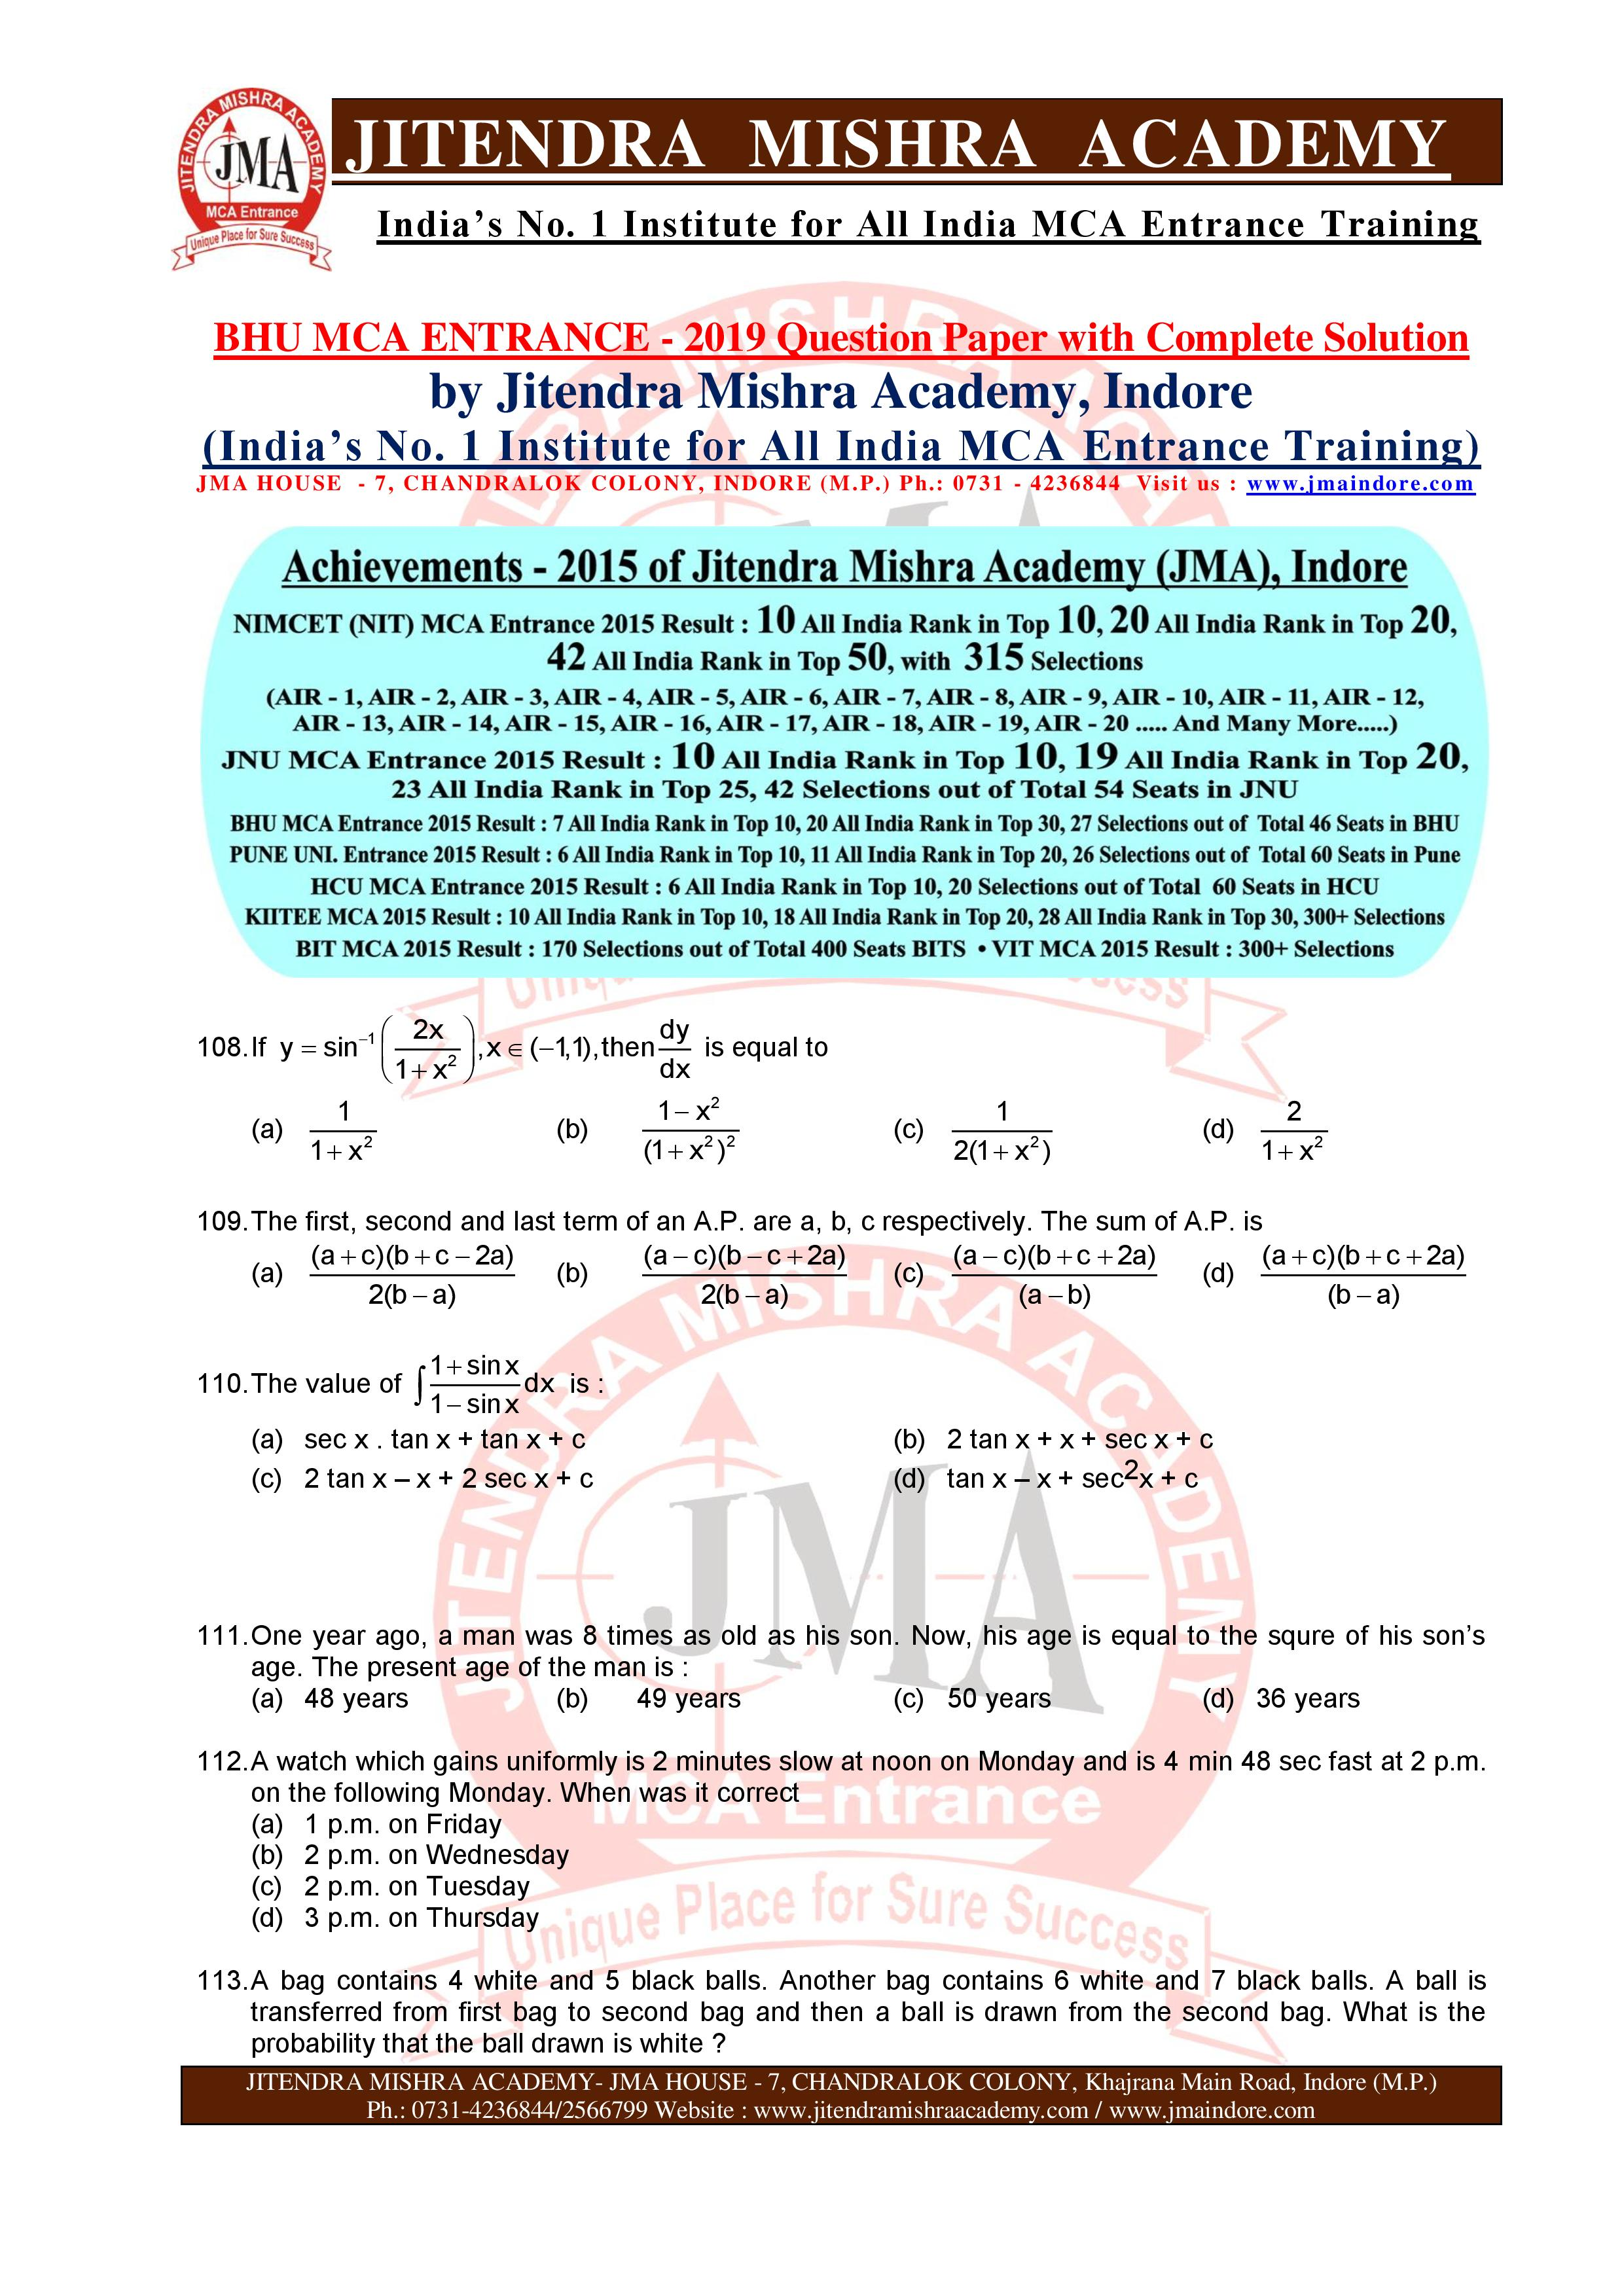 BHU MCA 2019 QUESTION PAPER-page-018